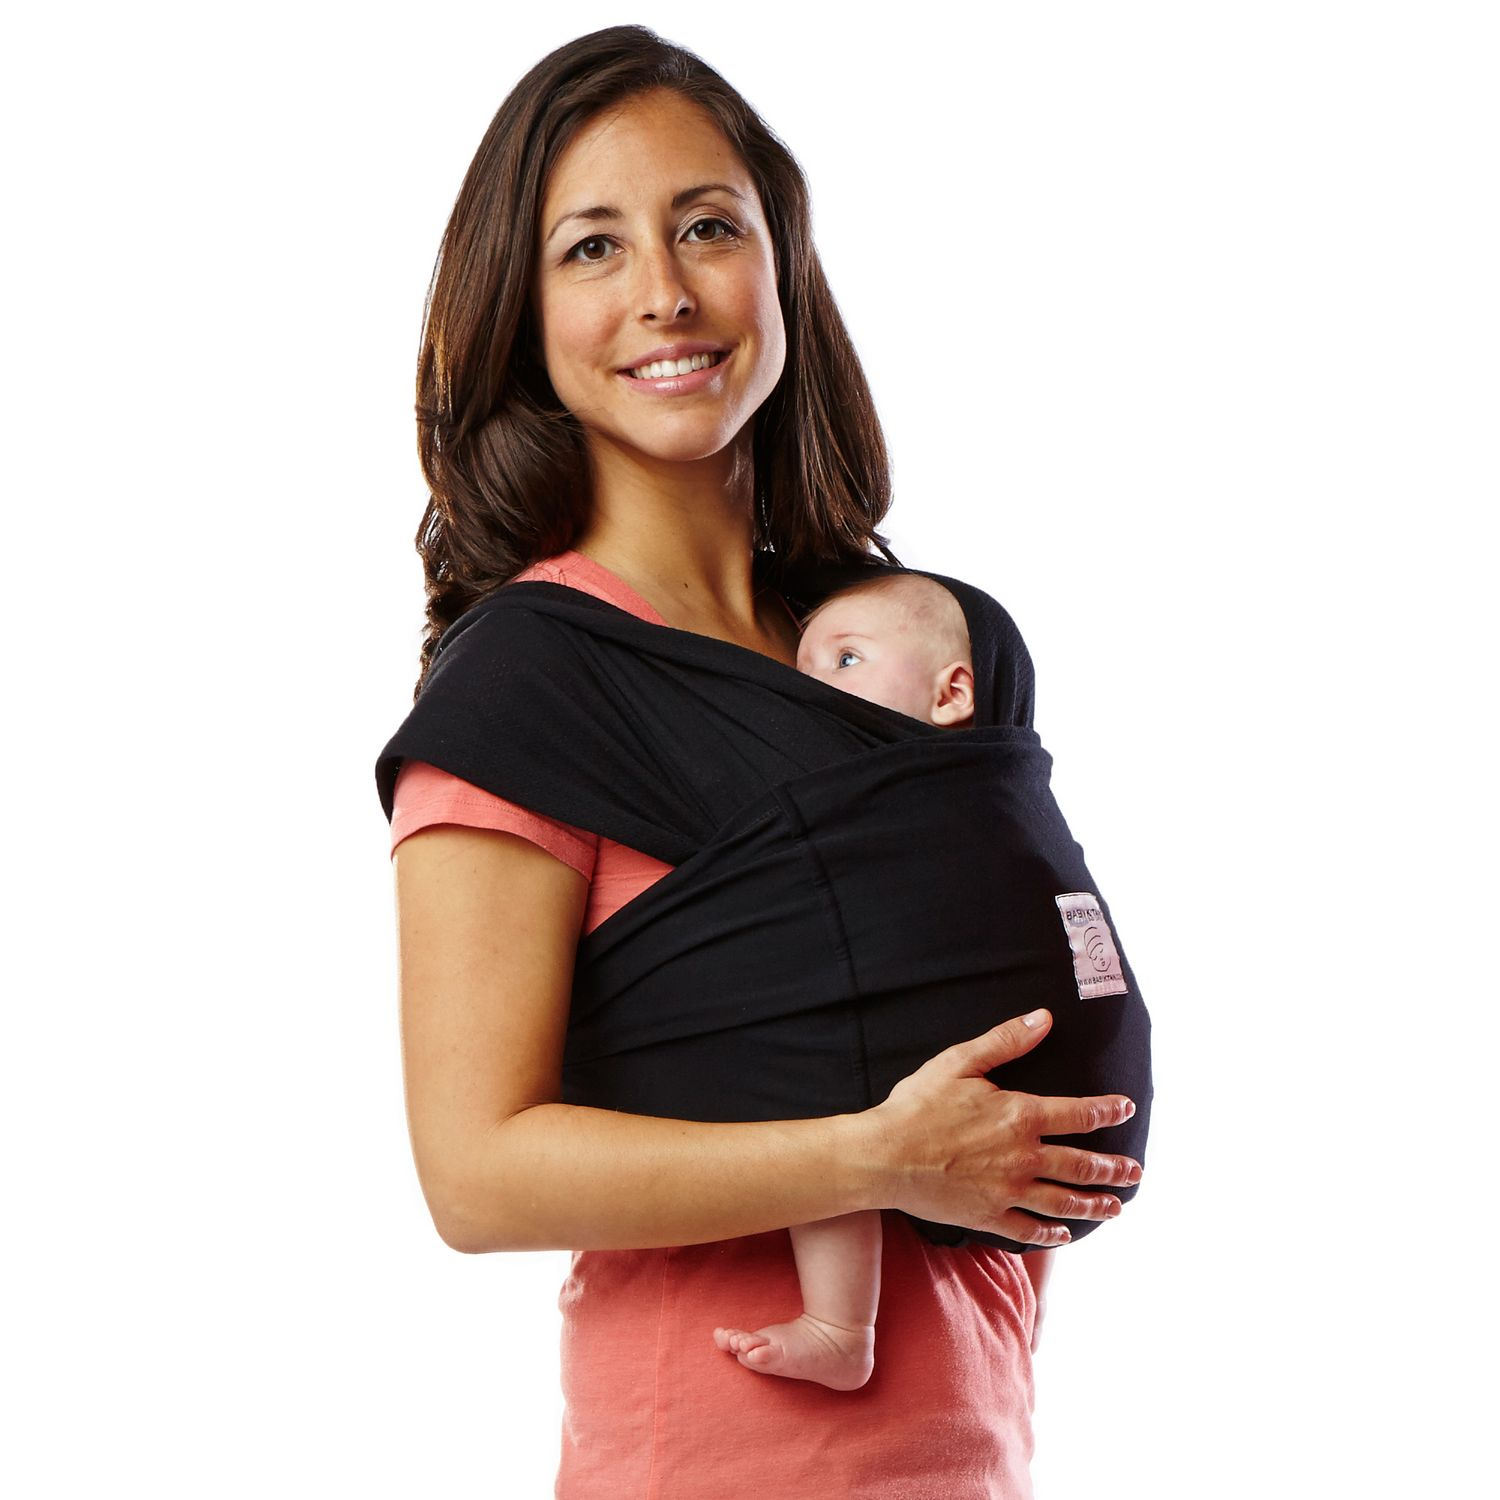 Baby K¿tan Baby Carrier - L - Sage Green